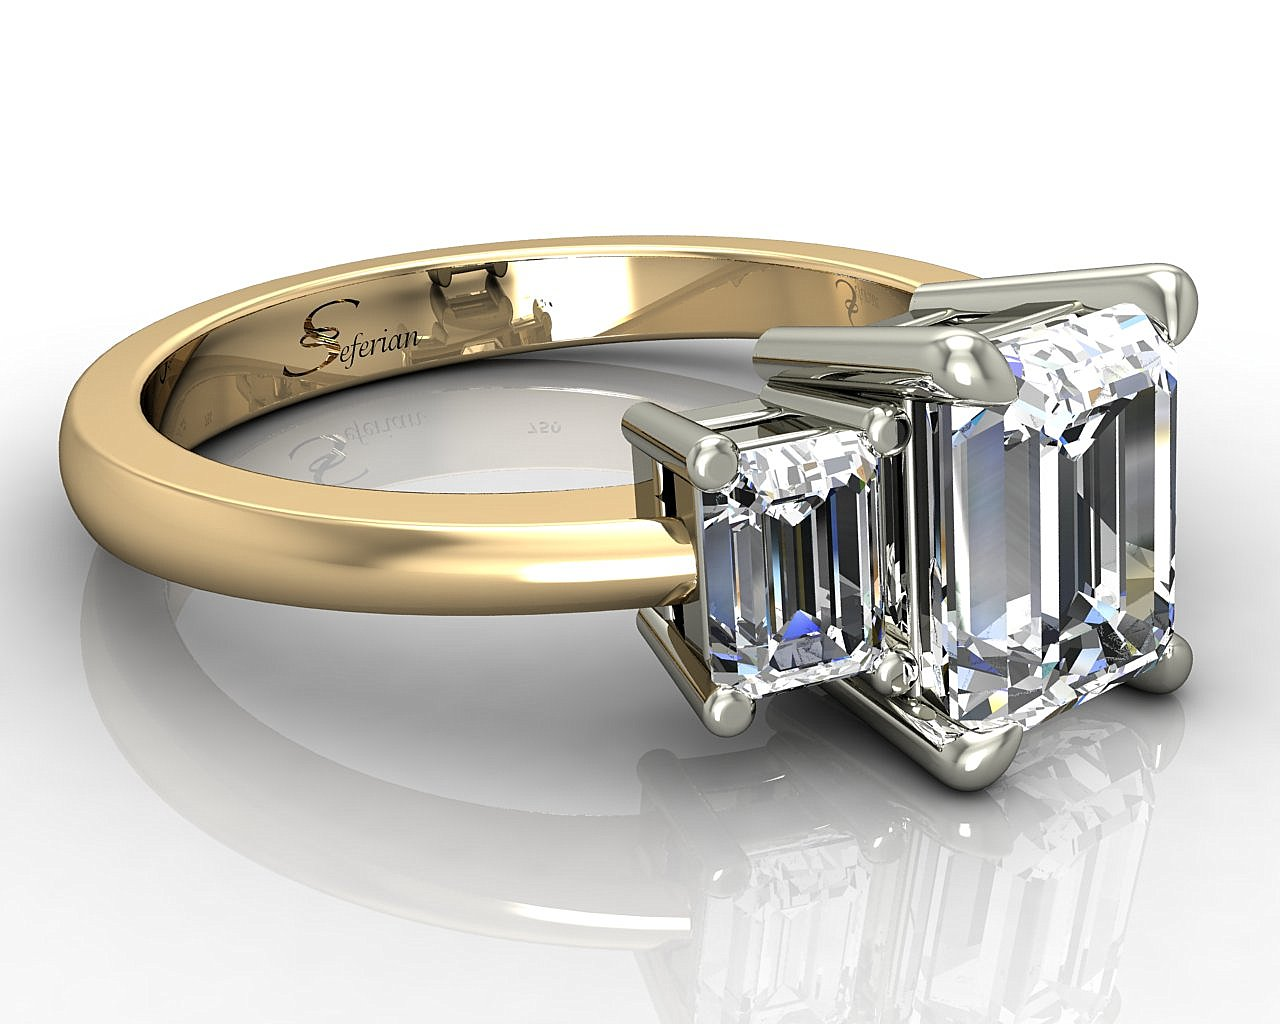 Wedding Ring Design Ideas wedding ring design ideas Wedding Ring Designs Engagement Ring Designs Diamond Ring Designs